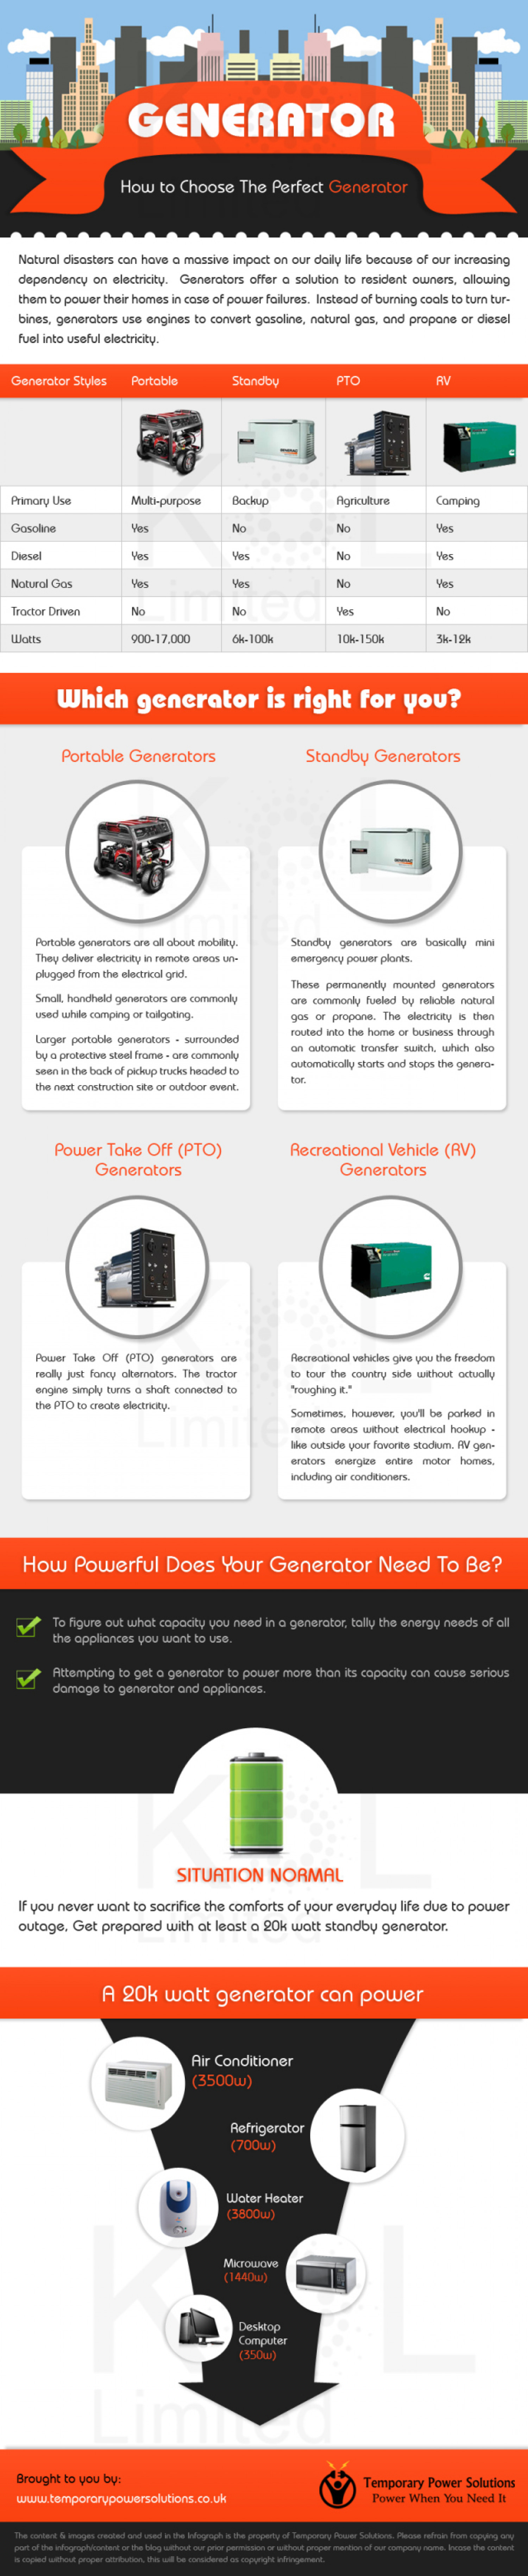 How To Choose The Right Generator? Infographic